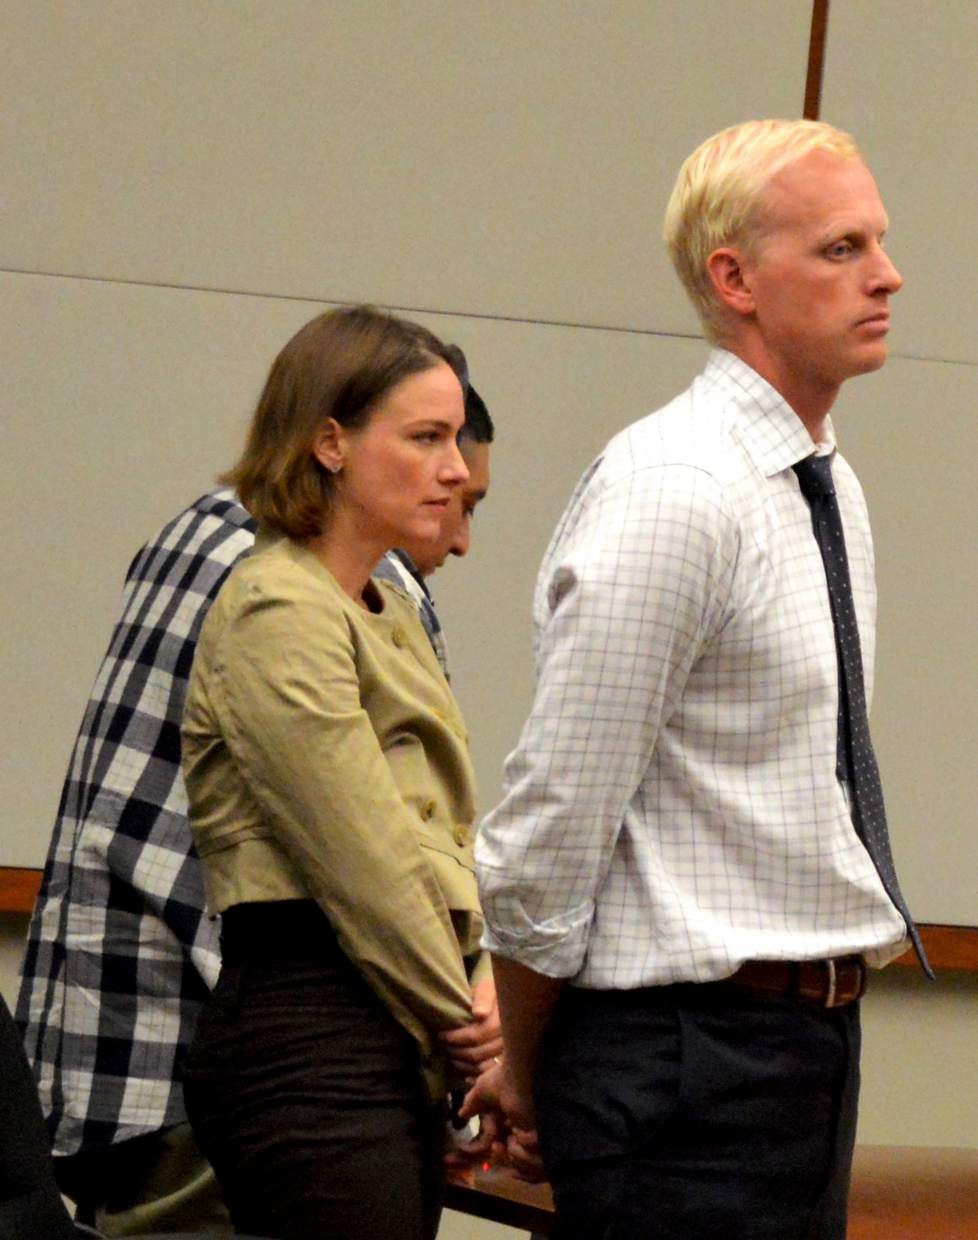 Defense attorneys Thea Reiff and Reed Owens stand with their client Williams Amaya as the jury returns with its verdict.